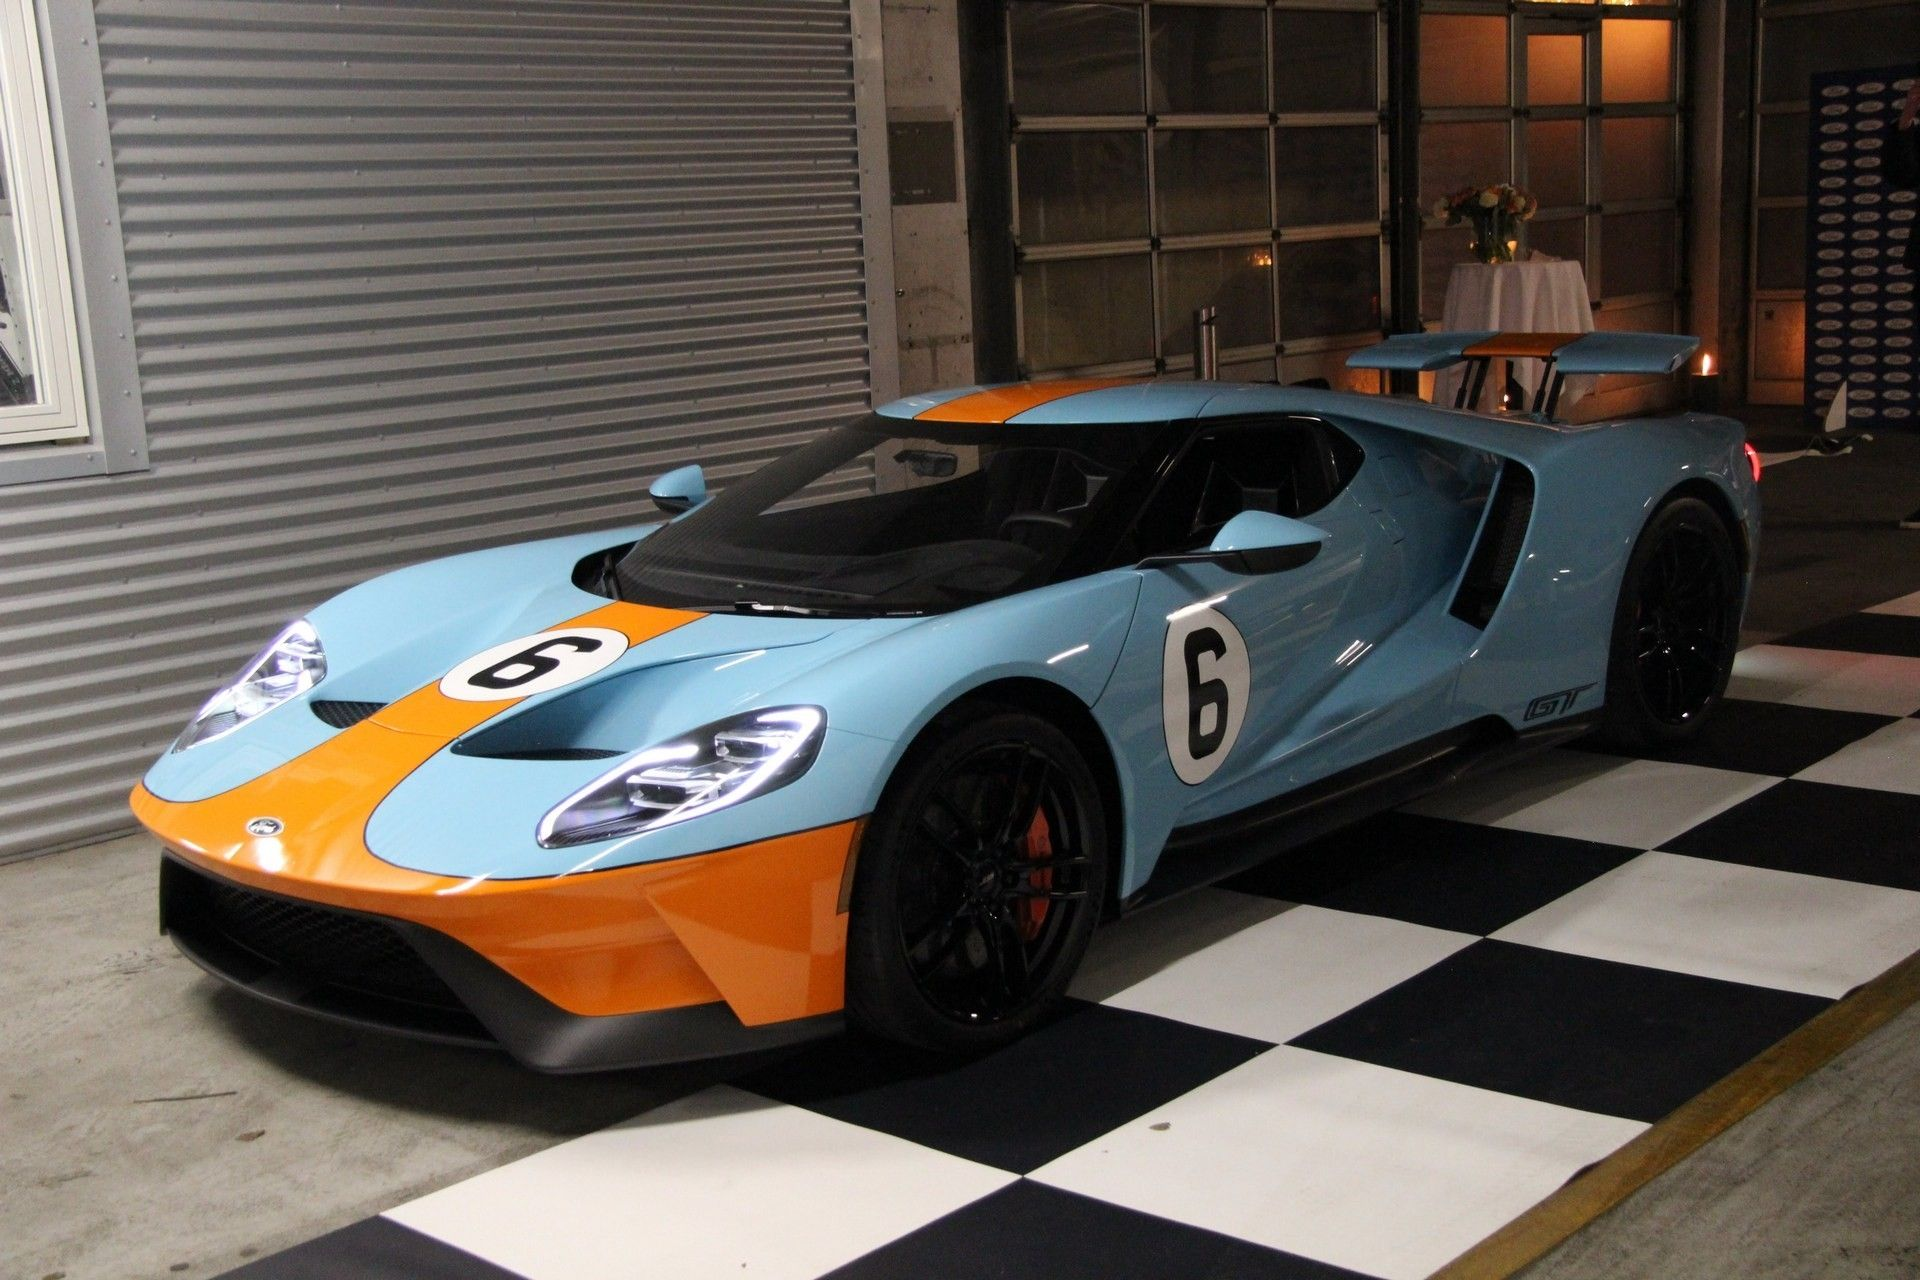 2019 Ford Gt Supercar Release Date And Specs Ford Gt Super Cars